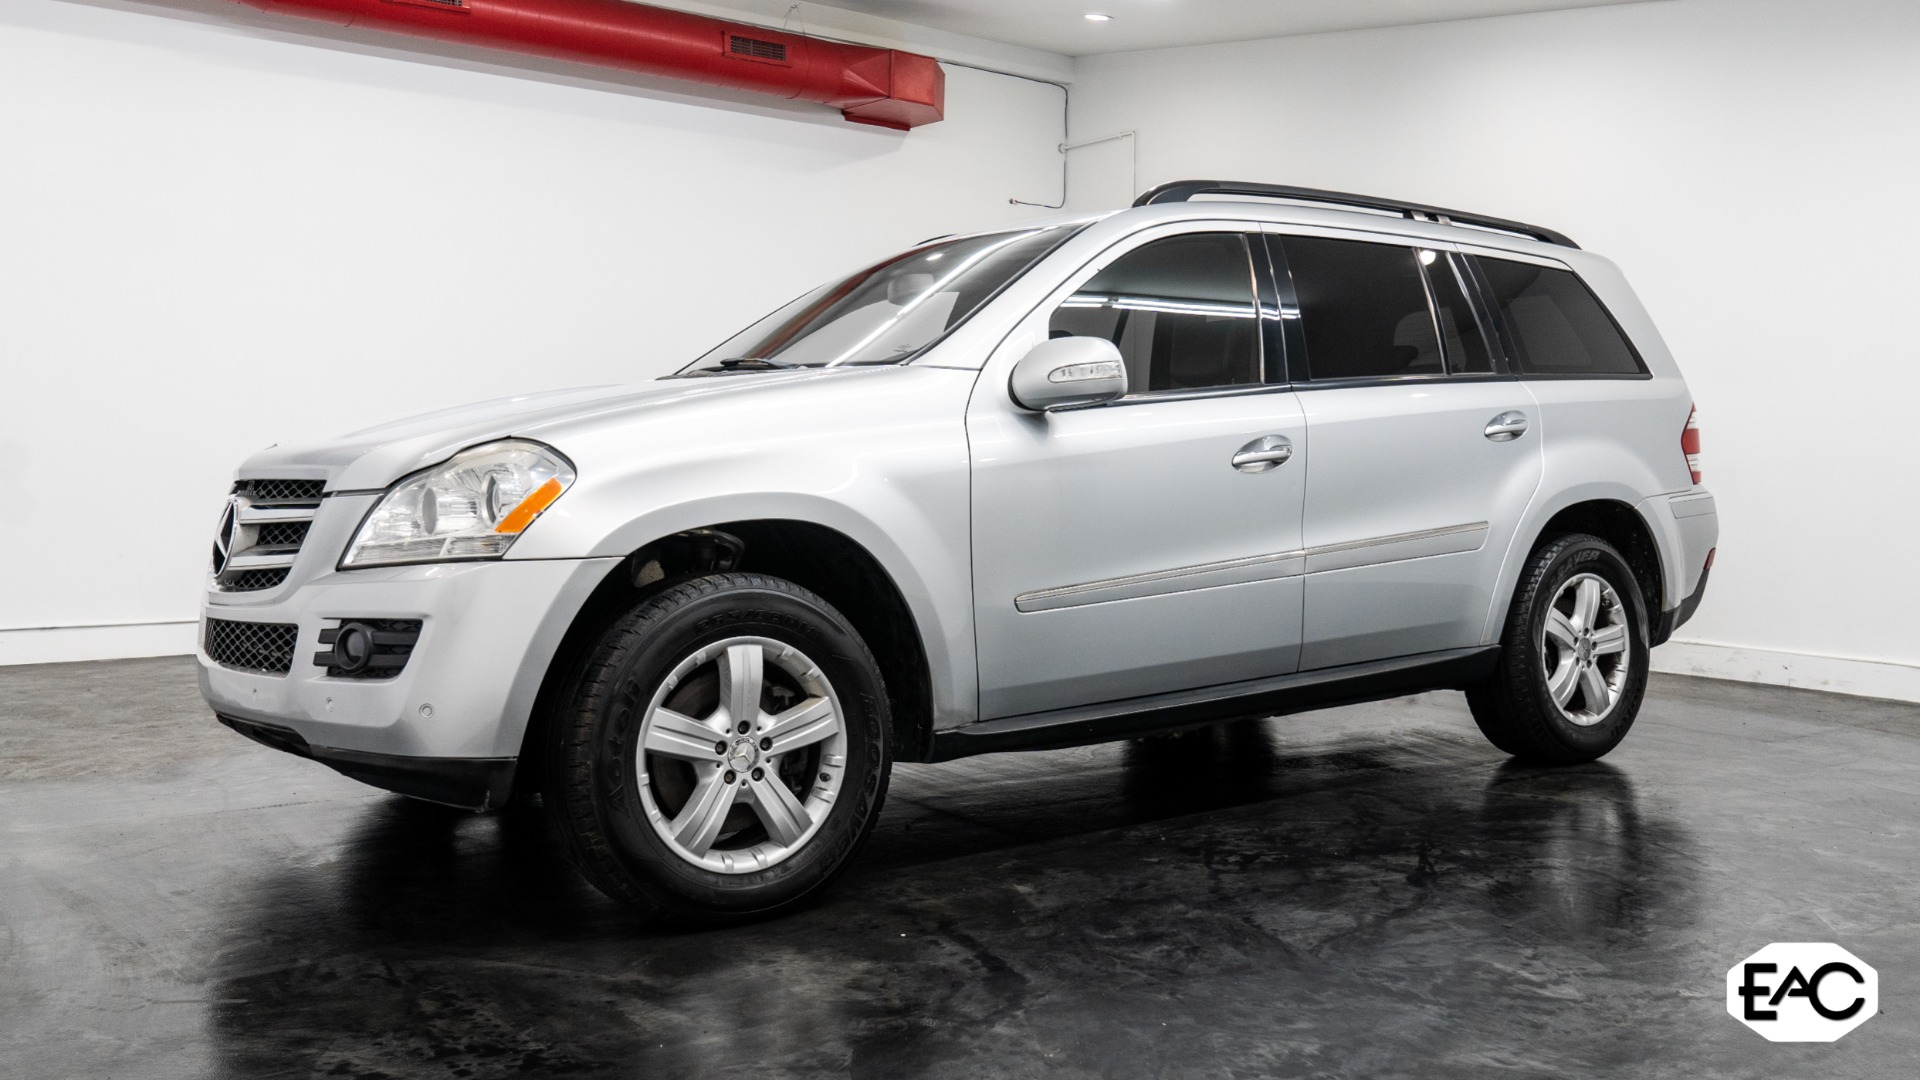 Used 2008 Mercedes-Benz GL-Class GL 450 4MATIC for sale $9,990 at Empire Auto Collection in Warren MI 48091 1